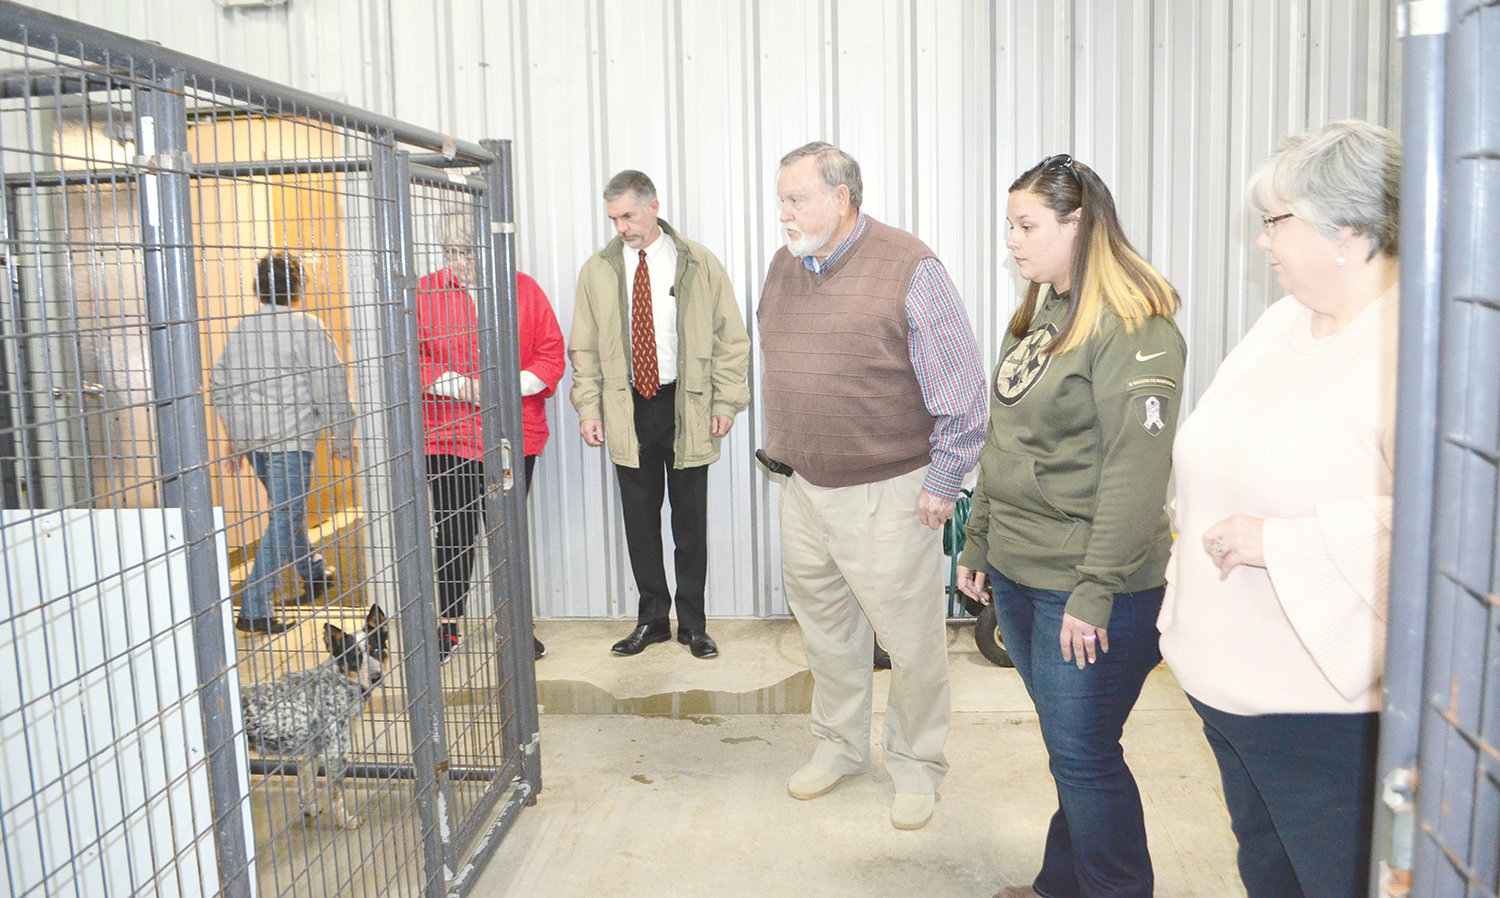 Many observe the county animal shelter's redesigned kennels Tuesday.